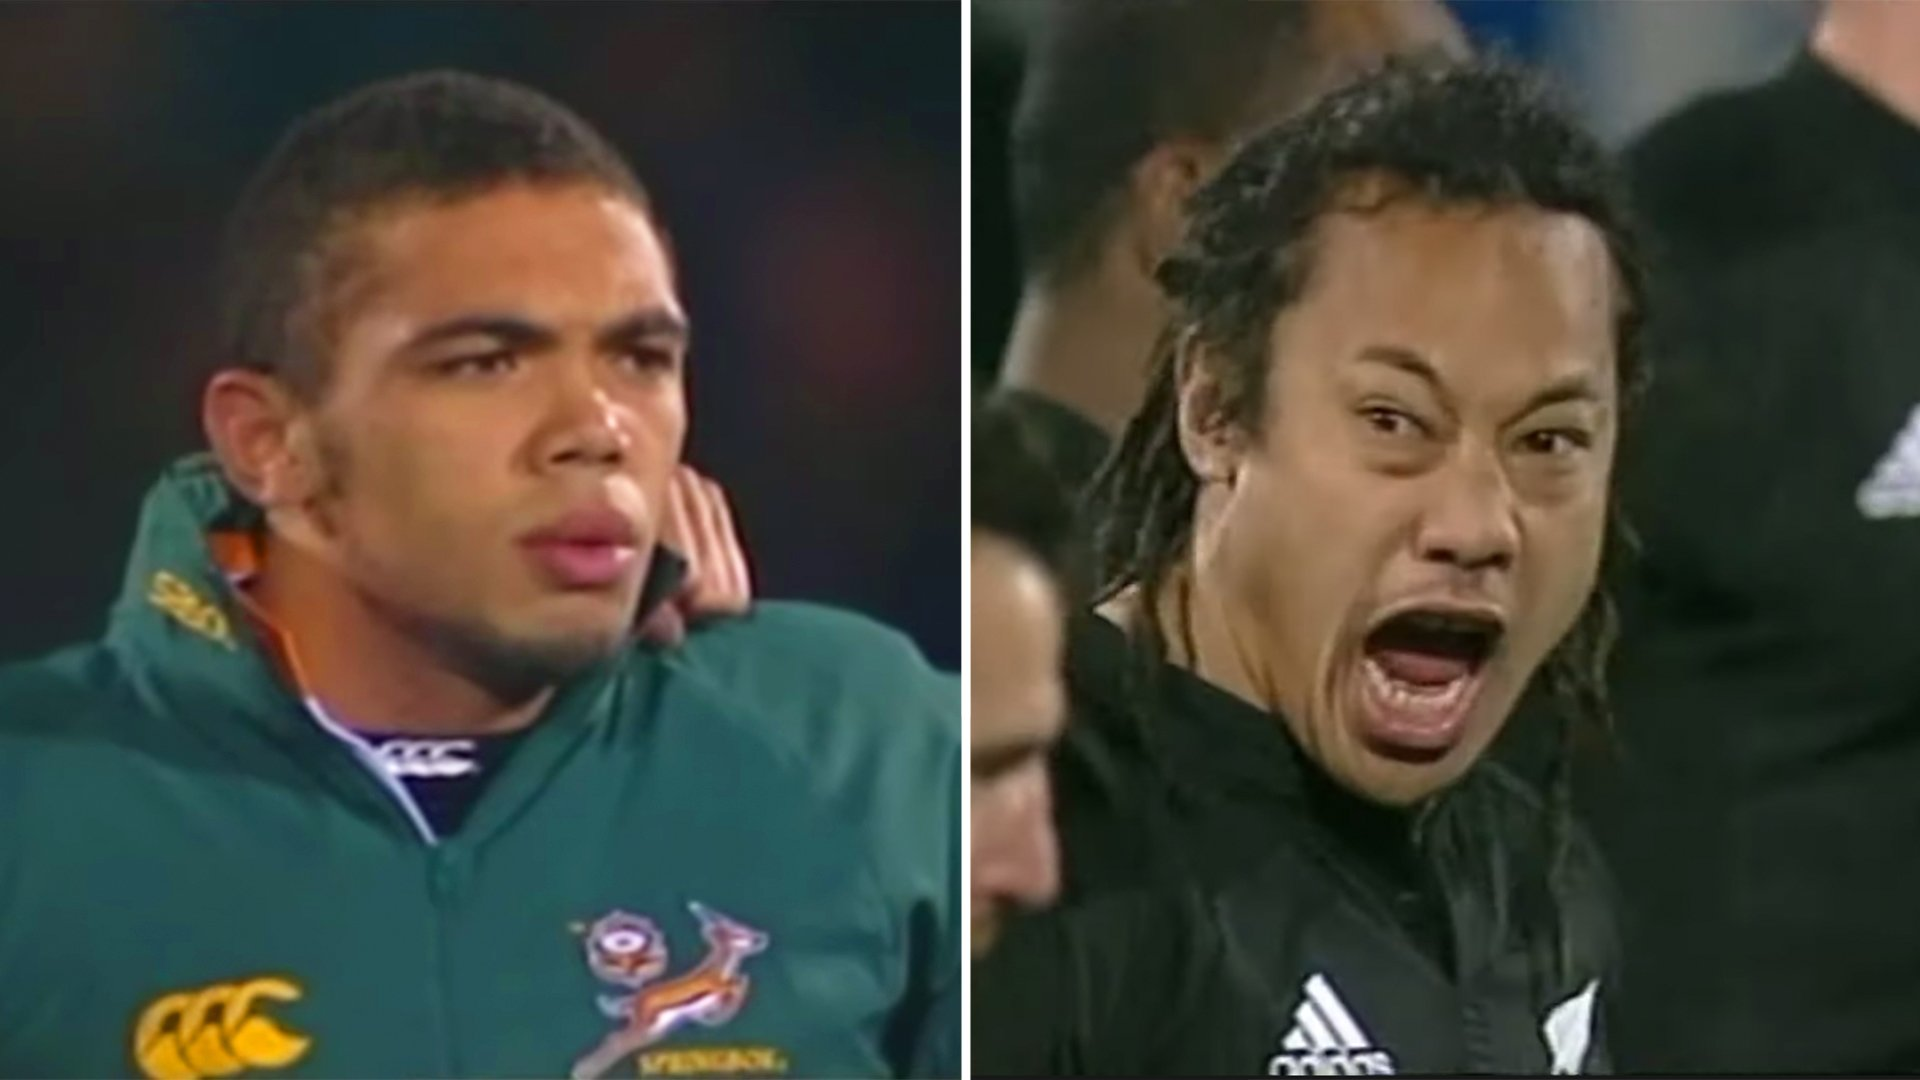 The All Blacks have released footage of their first ever Kapa O Pango haka which terrified the Springboks